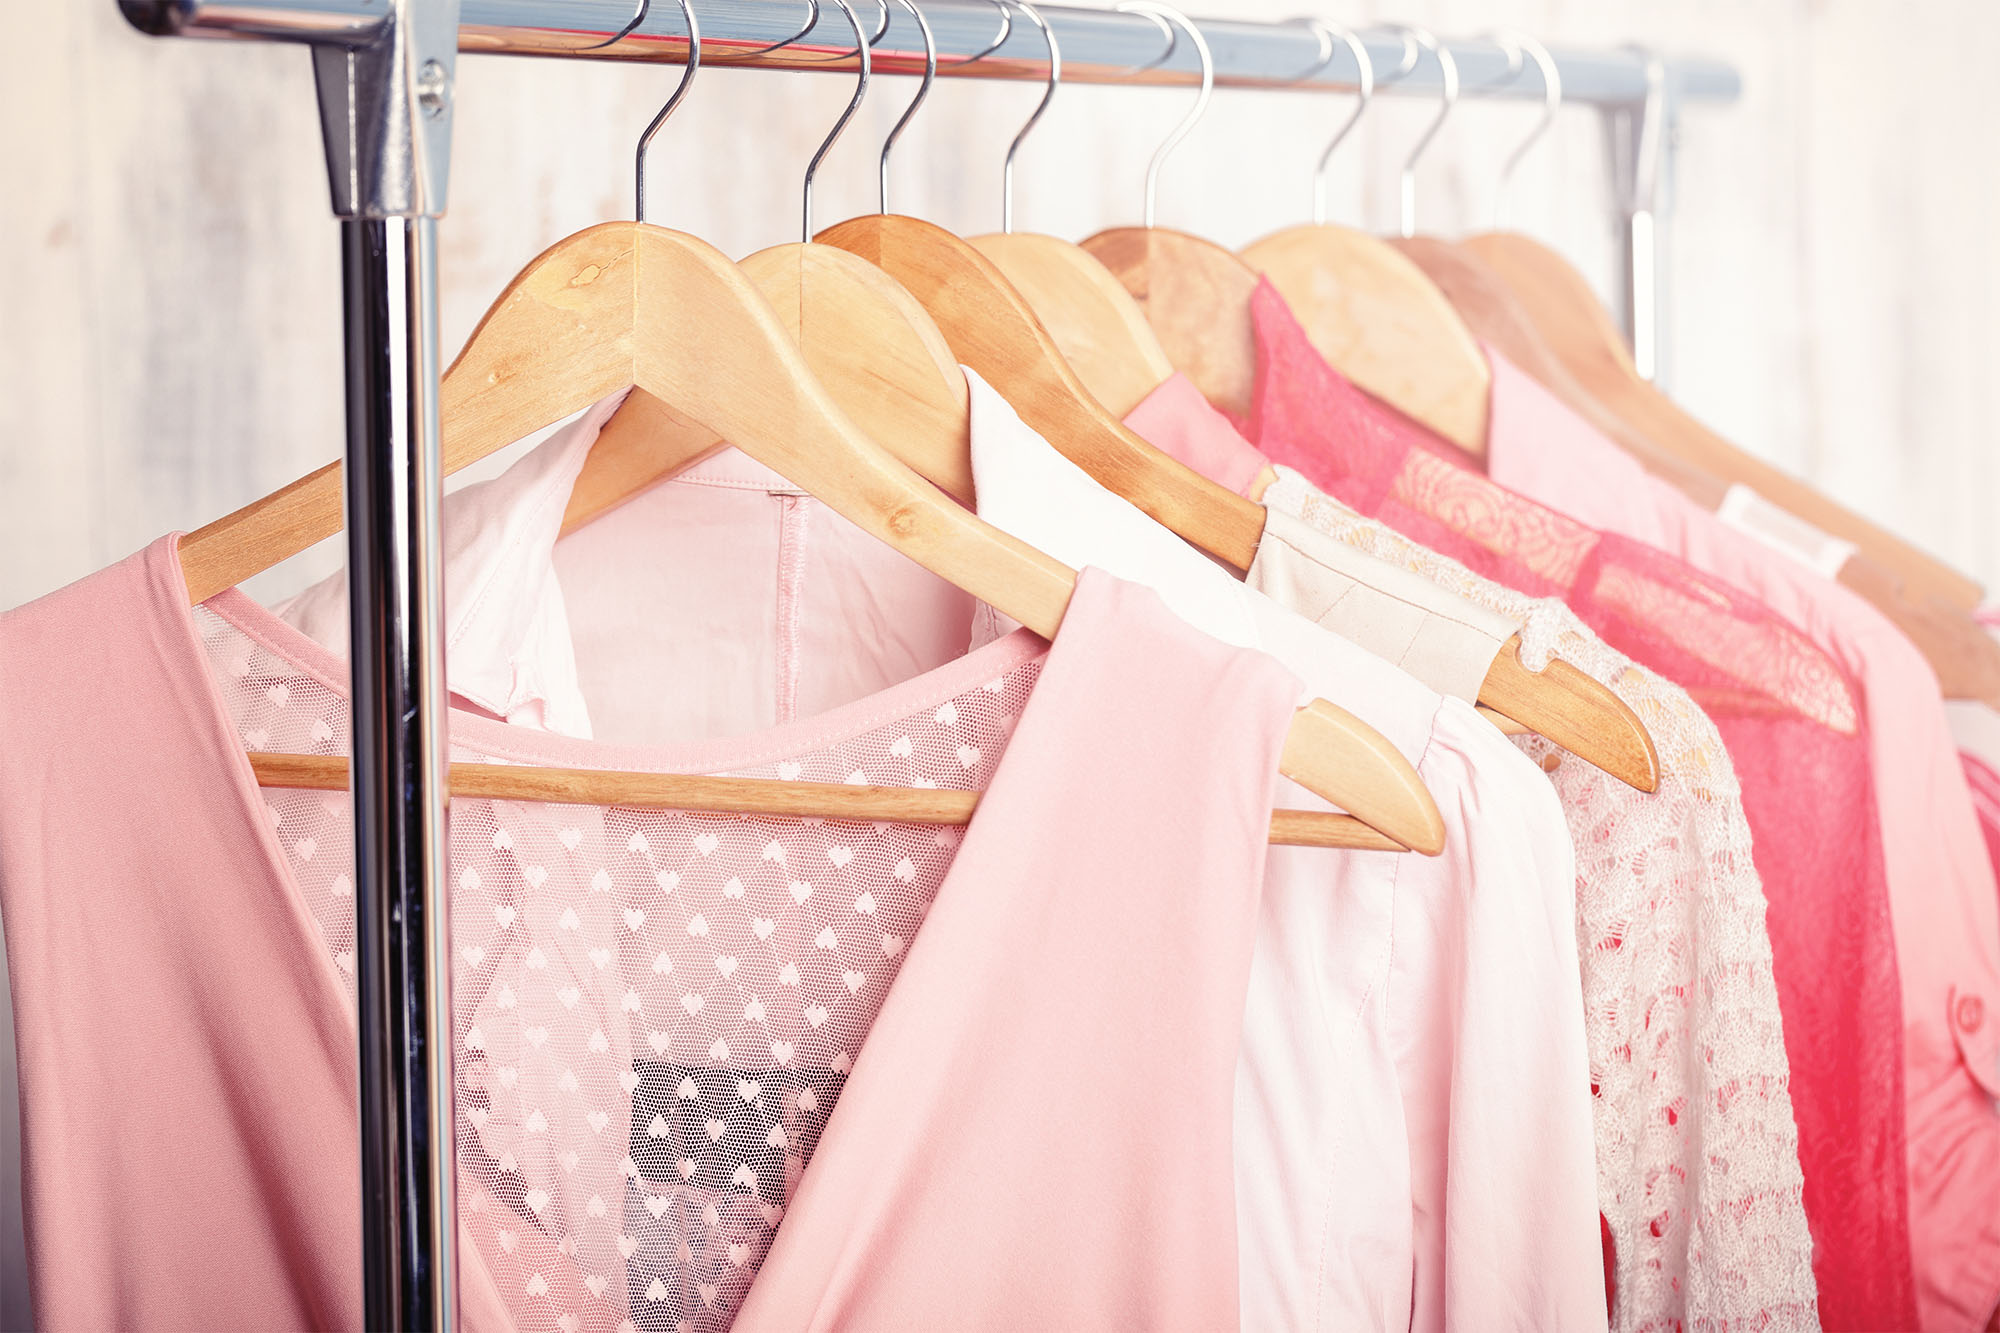 wholesale distributor of women's apparel participates in an asset based loan